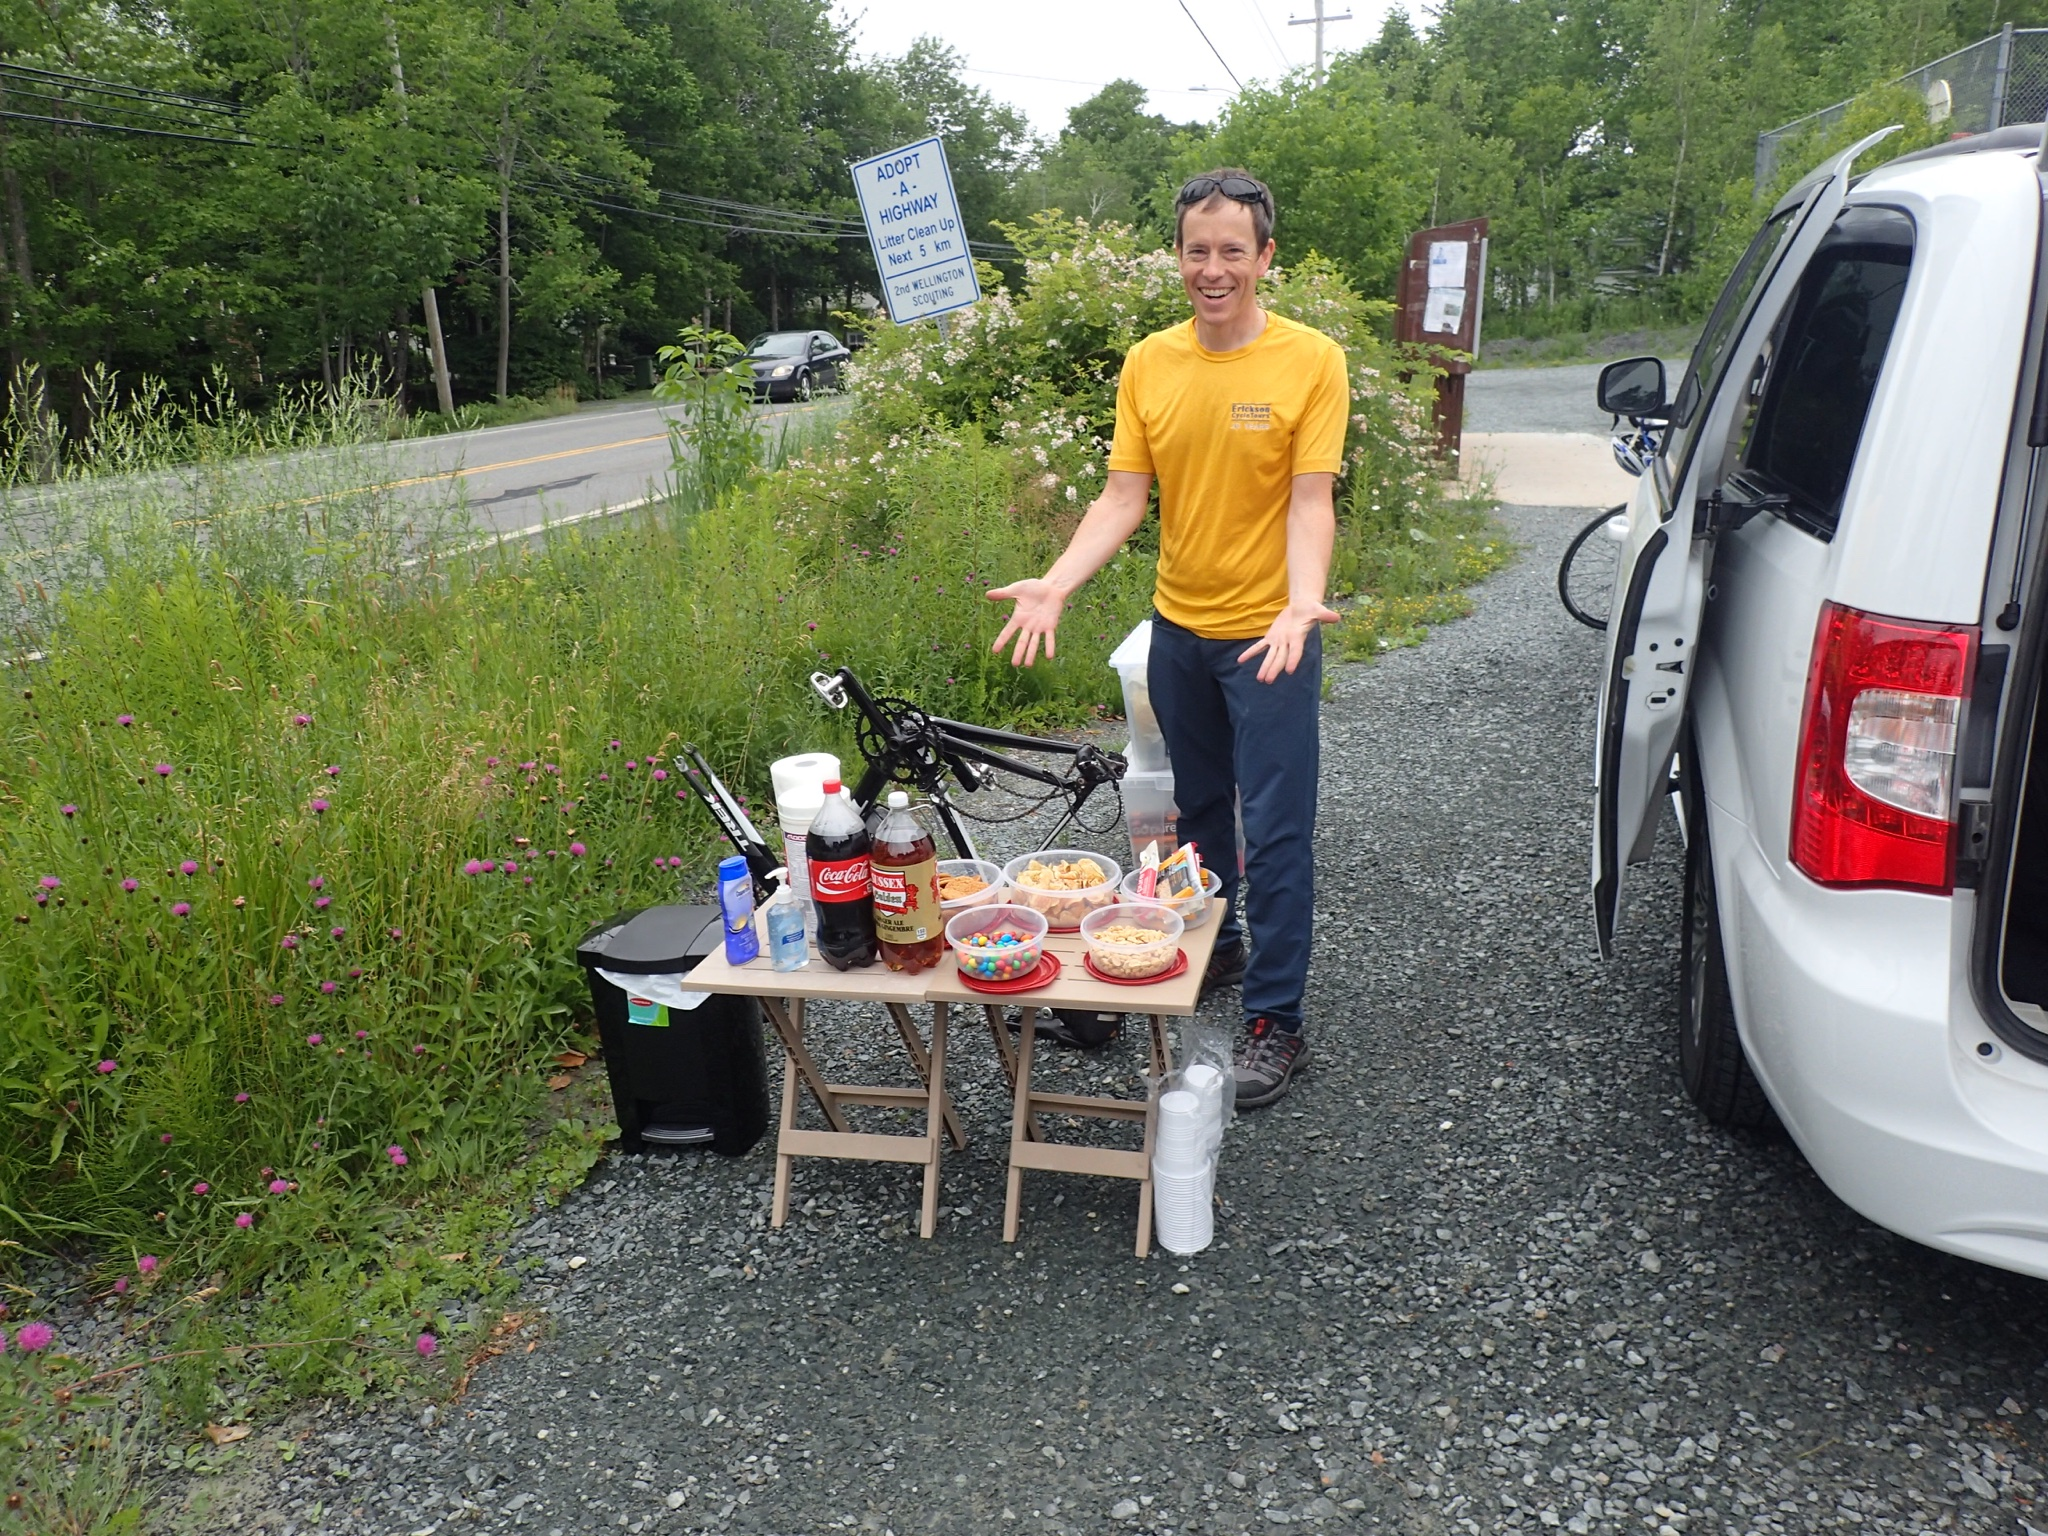 More of My life than I care to admit has been spent hanging out with snacks at the side of a road, waiting for cyclists to show up. (Photo: Howard Weeks)